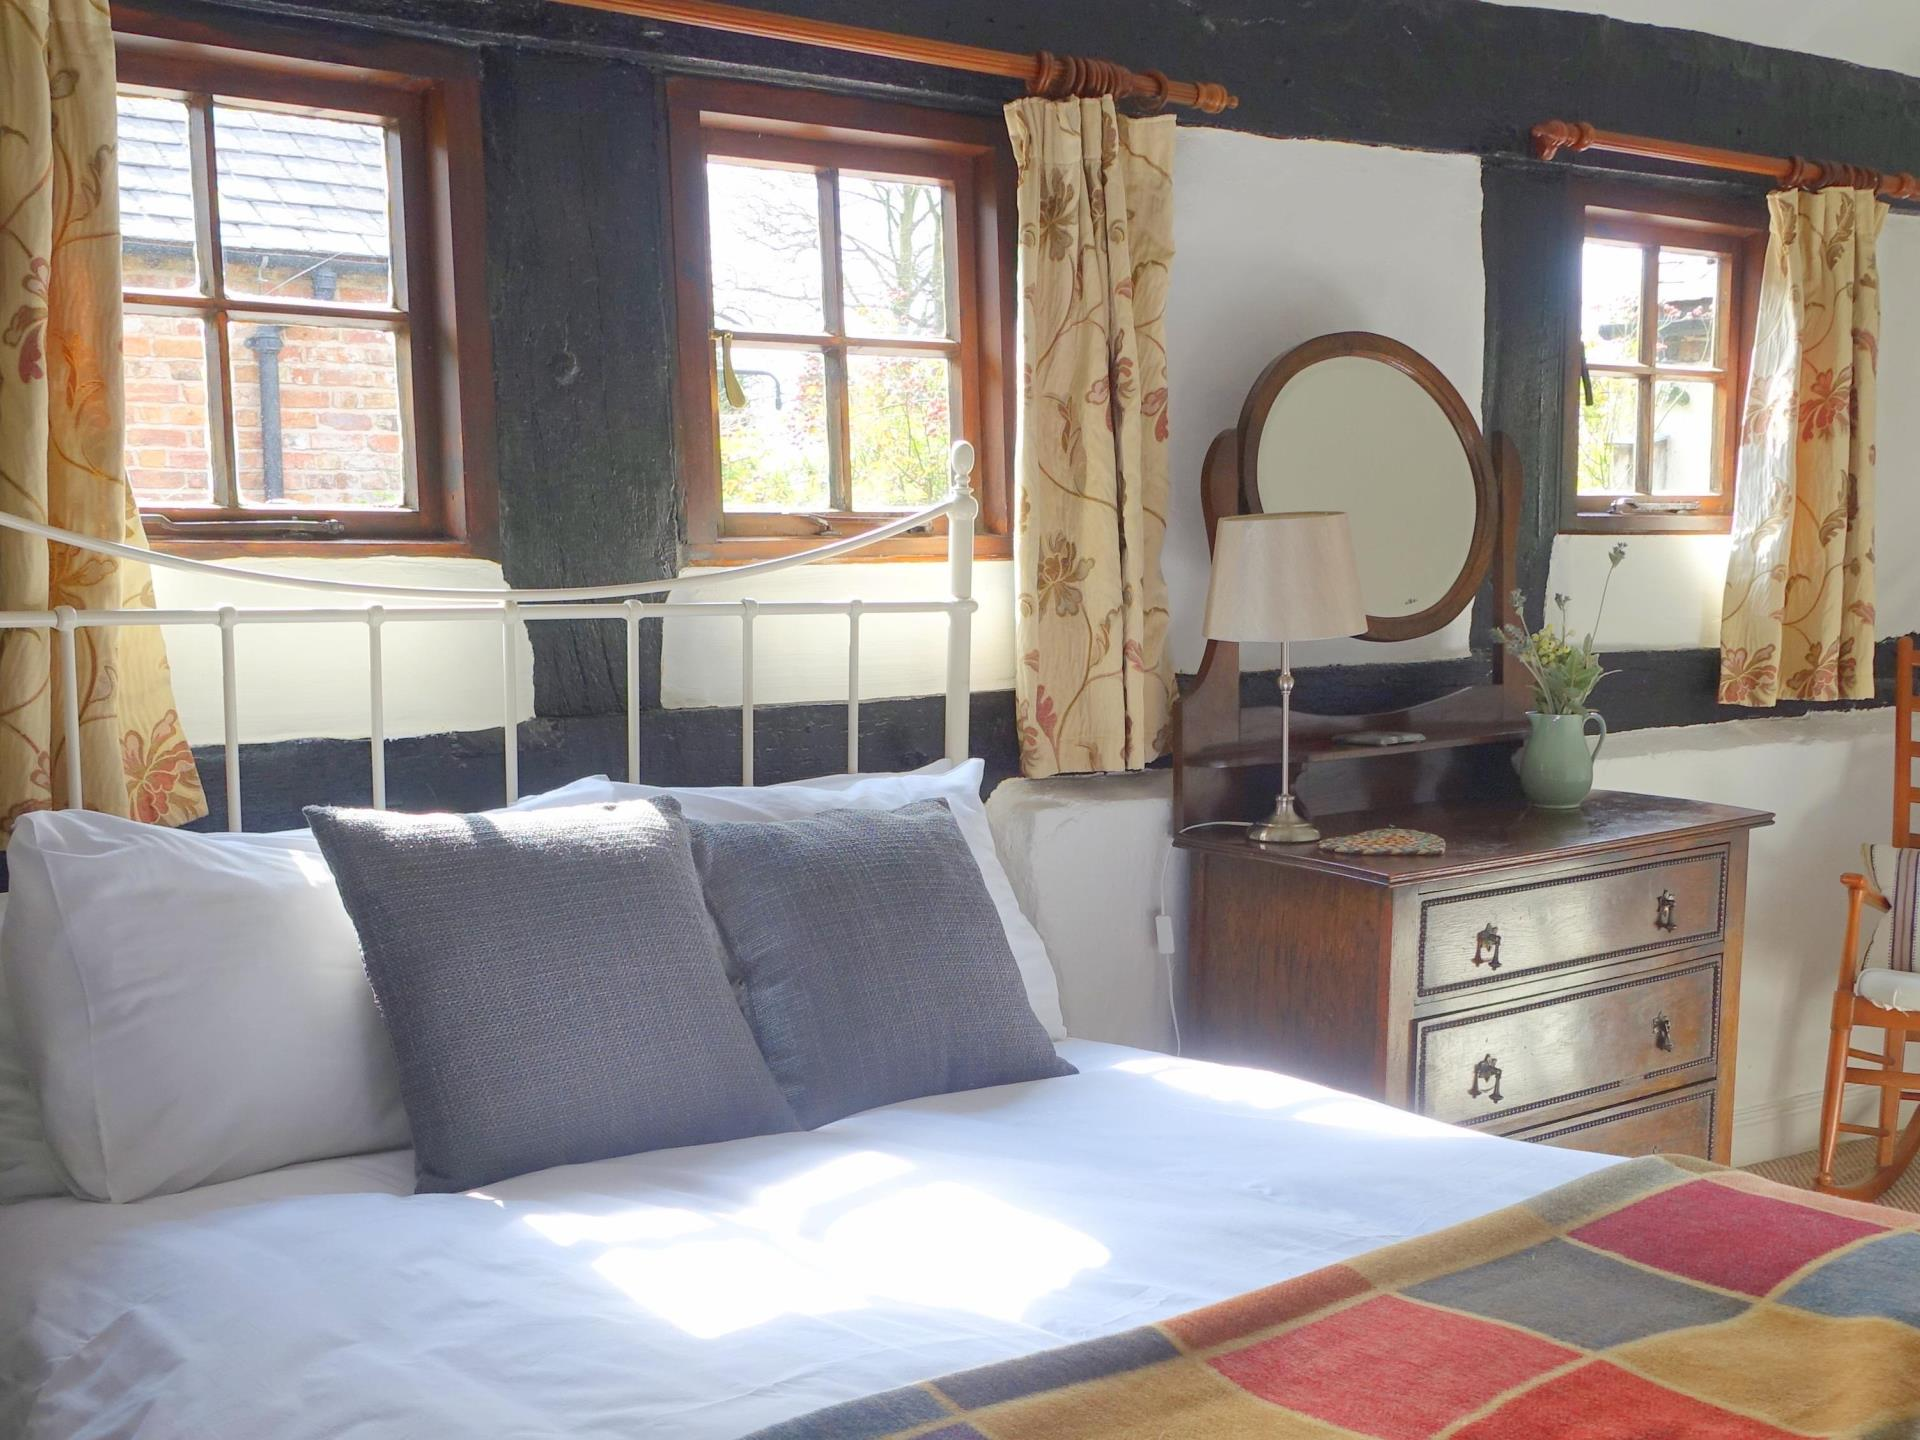 Stableyard Cottage's 17th century double bedroom